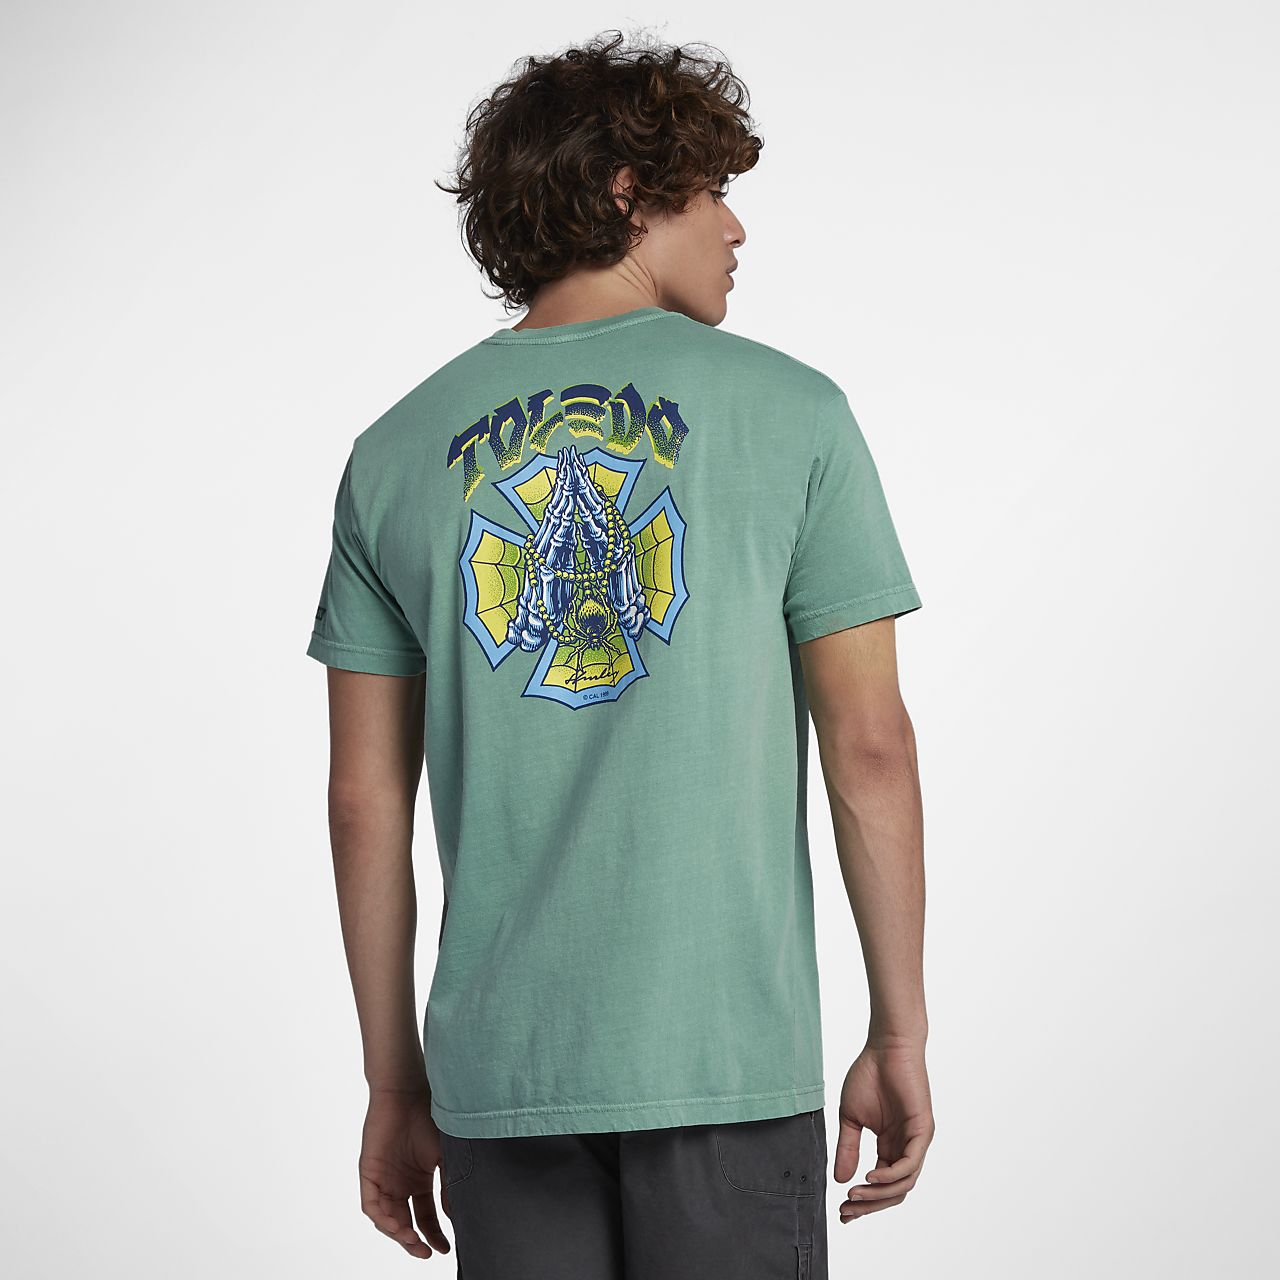 Hurley Team Toledo Men's T-Shirt